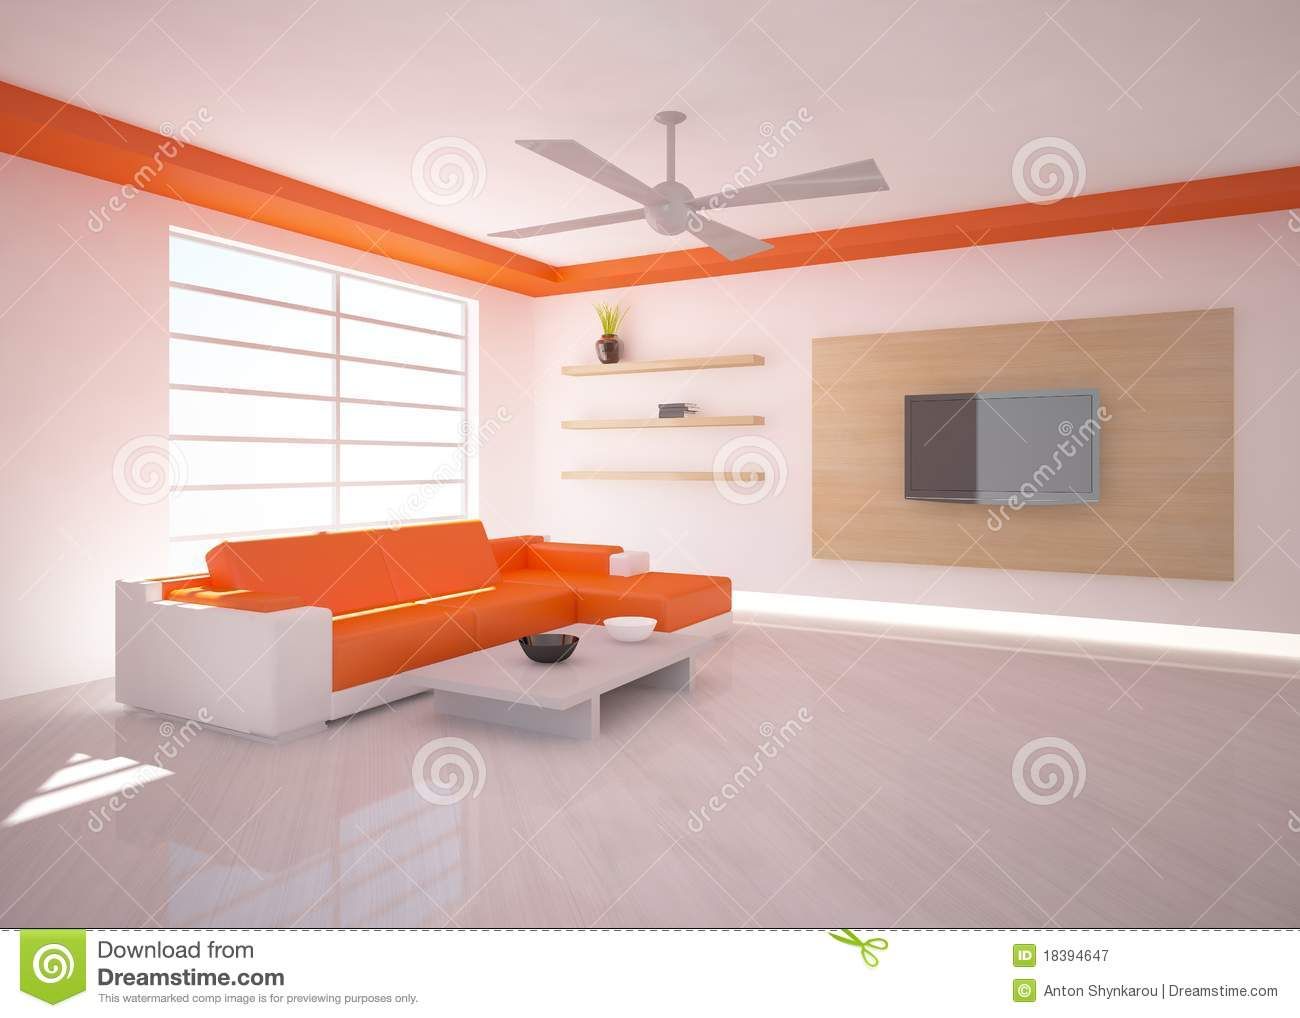 Orange Interior Design Royalty Free Stock Photography